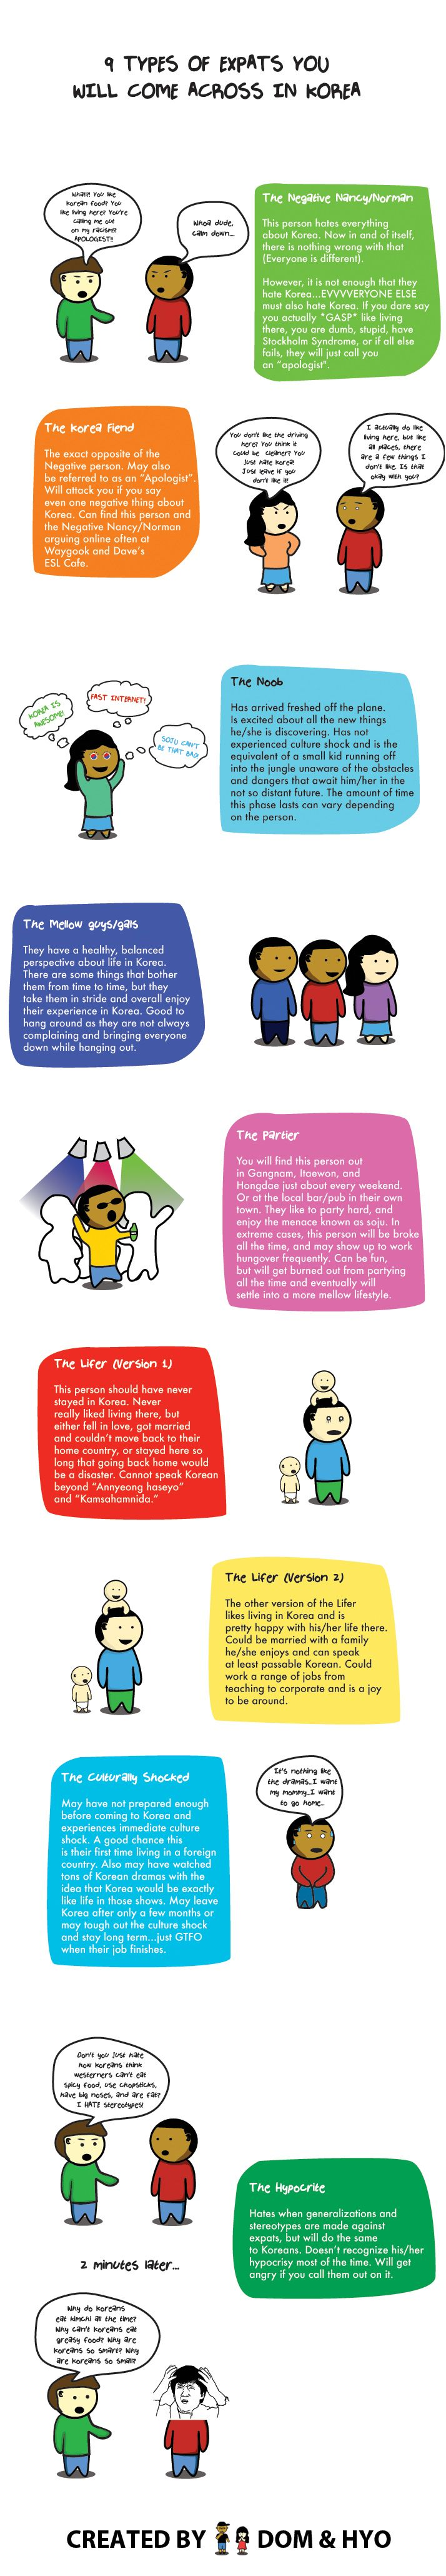 9 Different Types of Expats